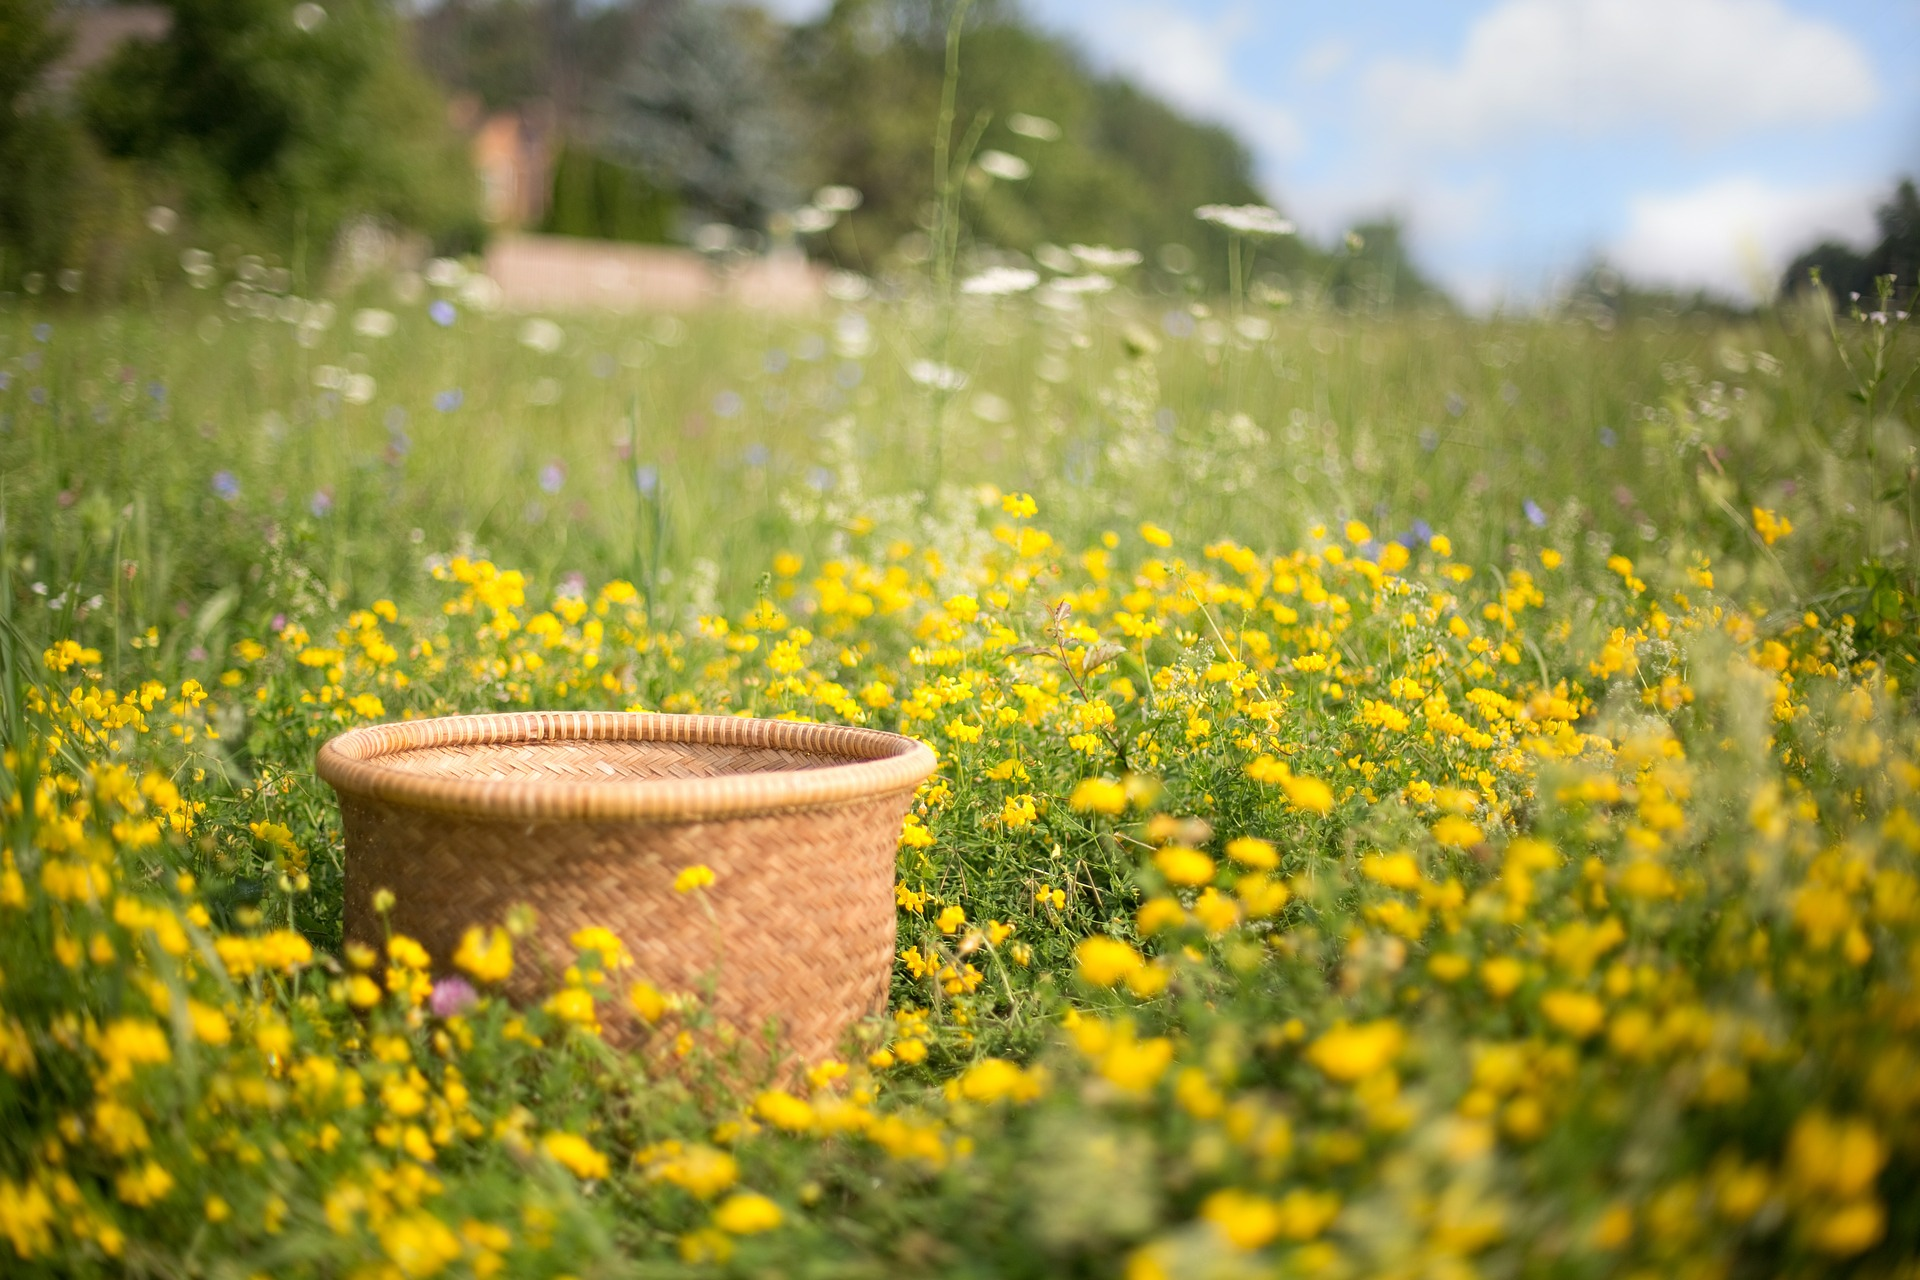 Basket in the Field, Object, Wild, Wooden, Garden, HQ Photo